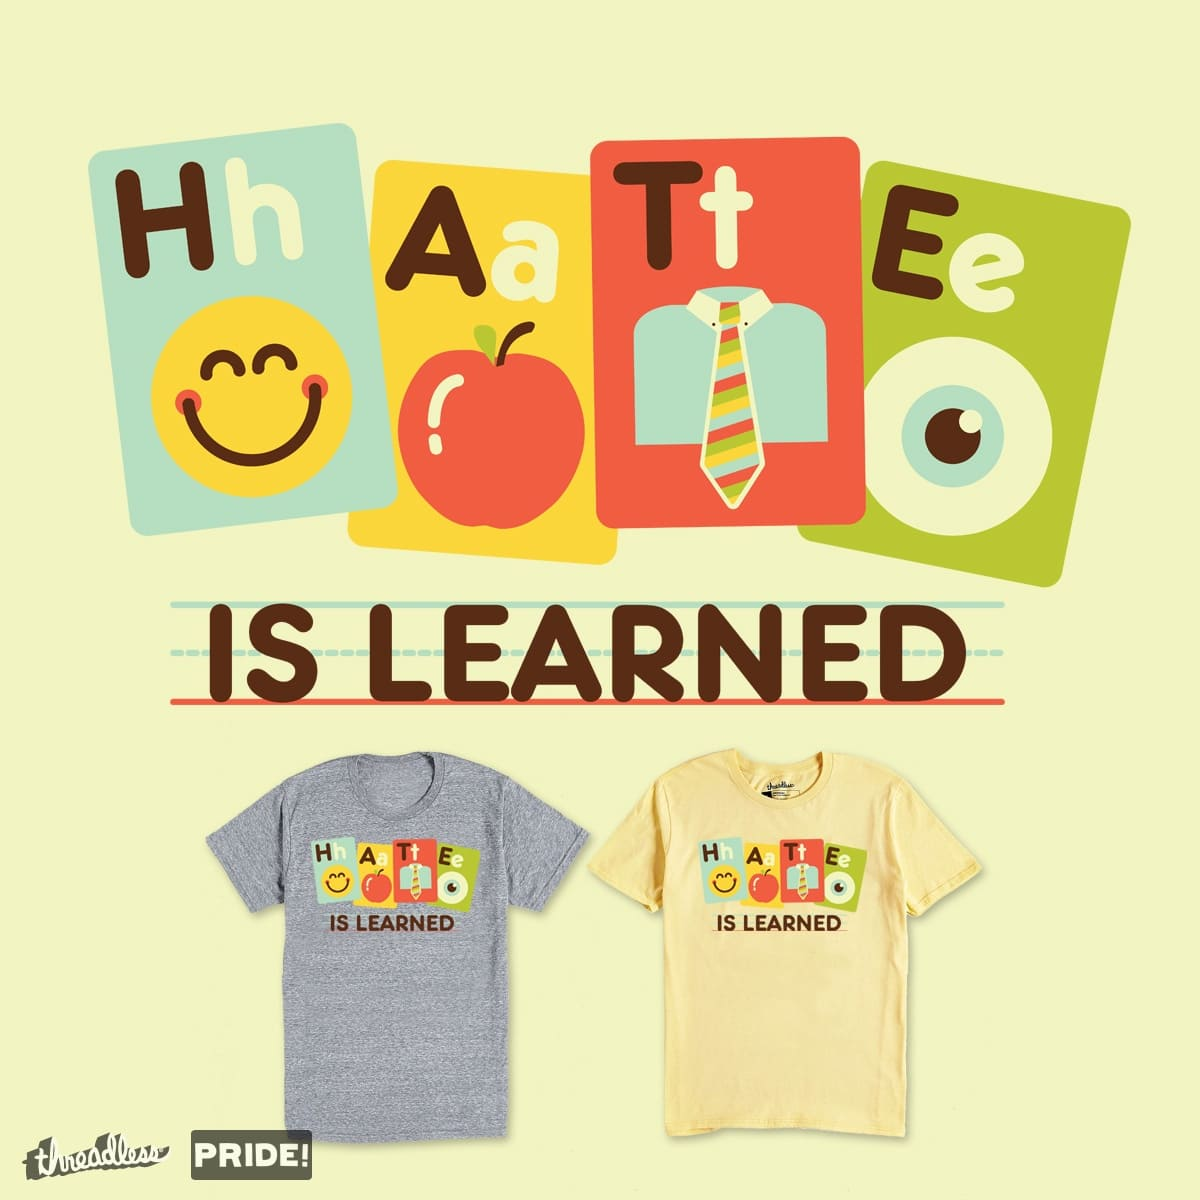 Hate is Learned by campkatie on Threadless